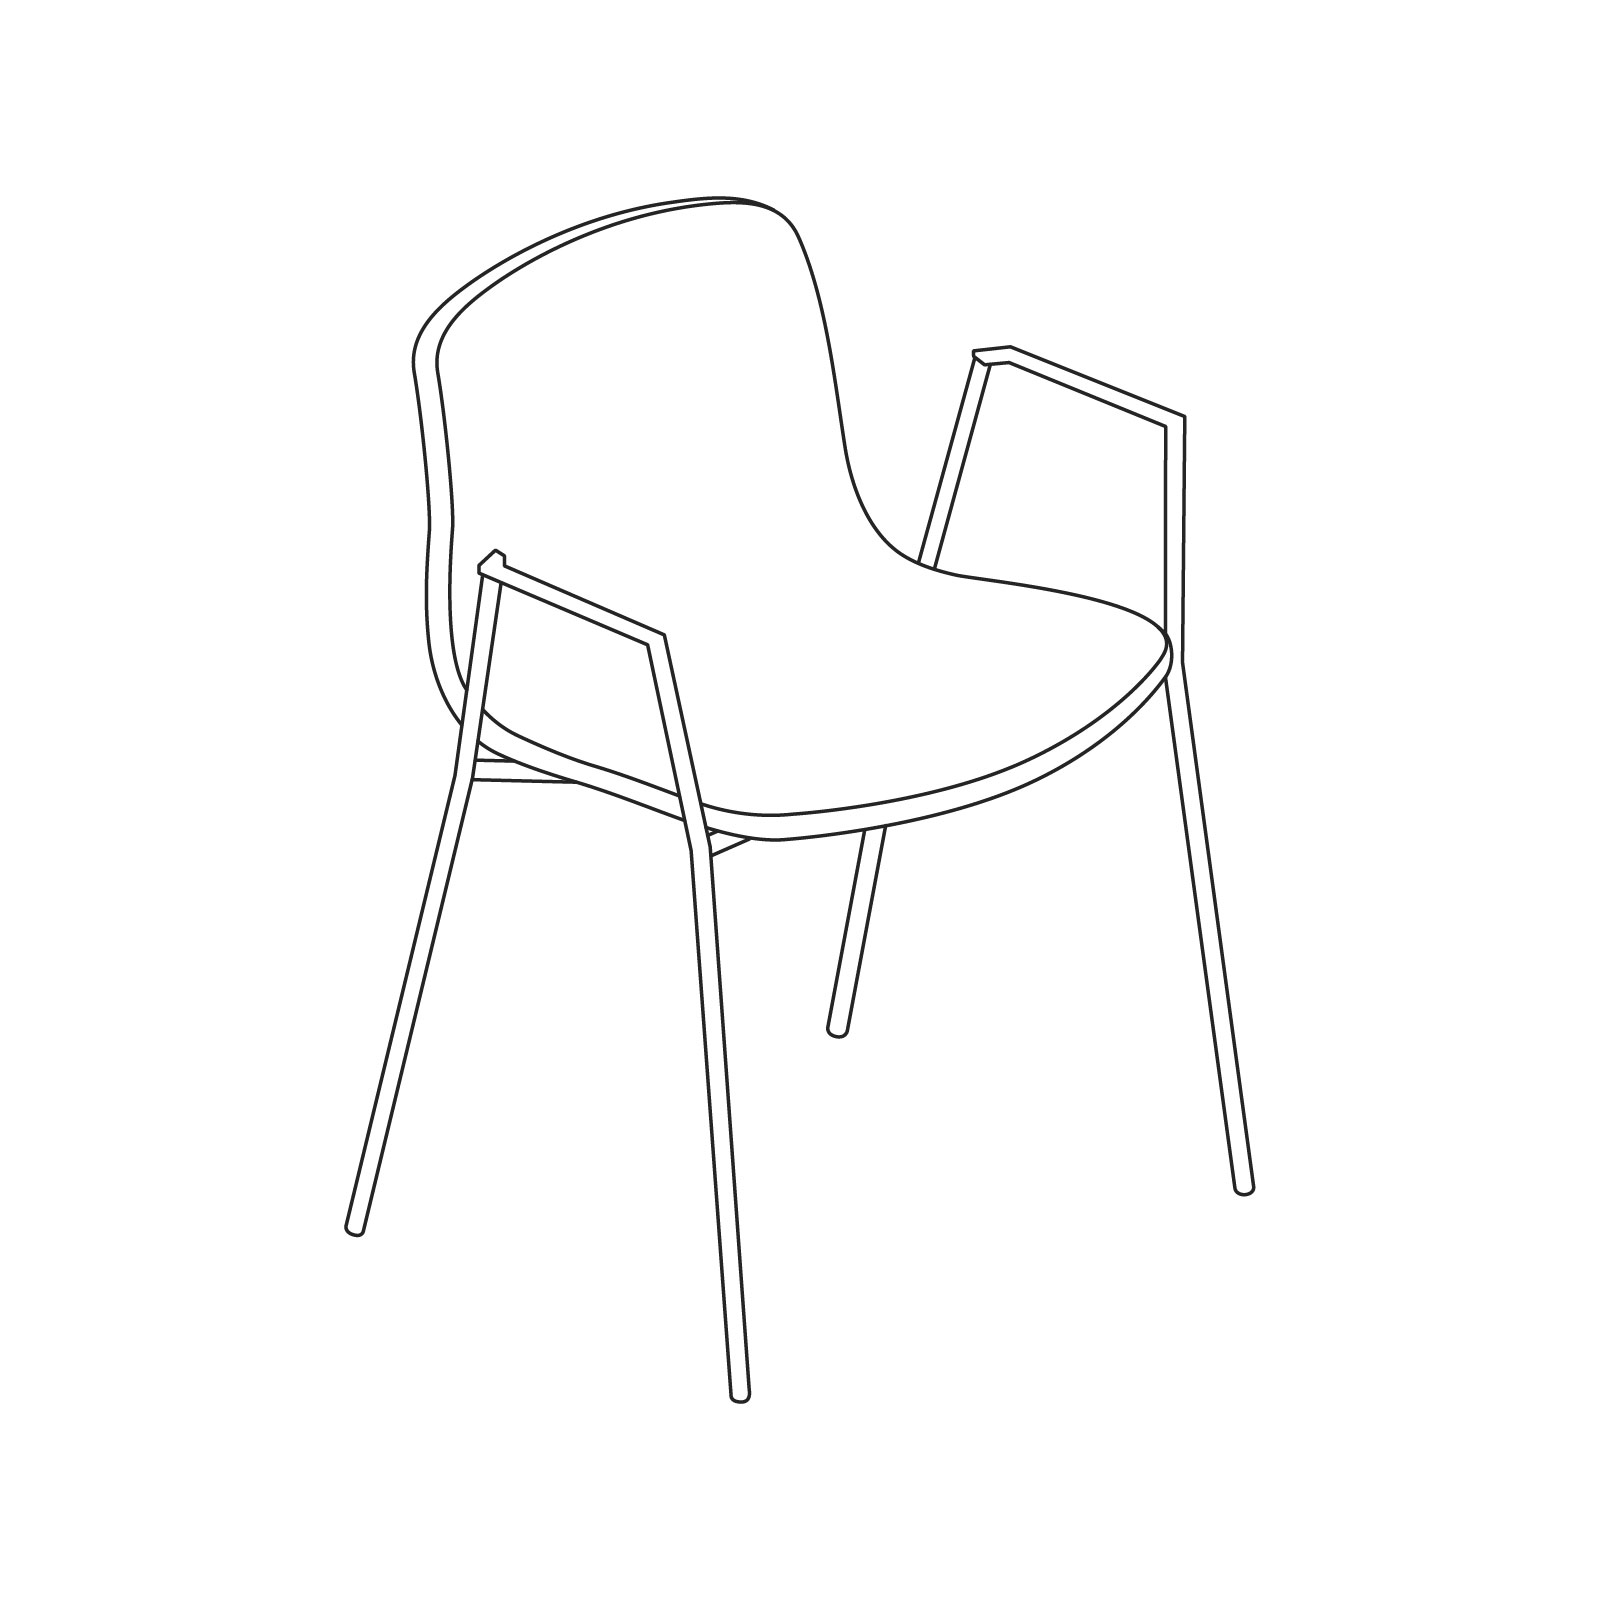 how to draw an arm chair about a chair side chair herman miller arm to how draw chair an